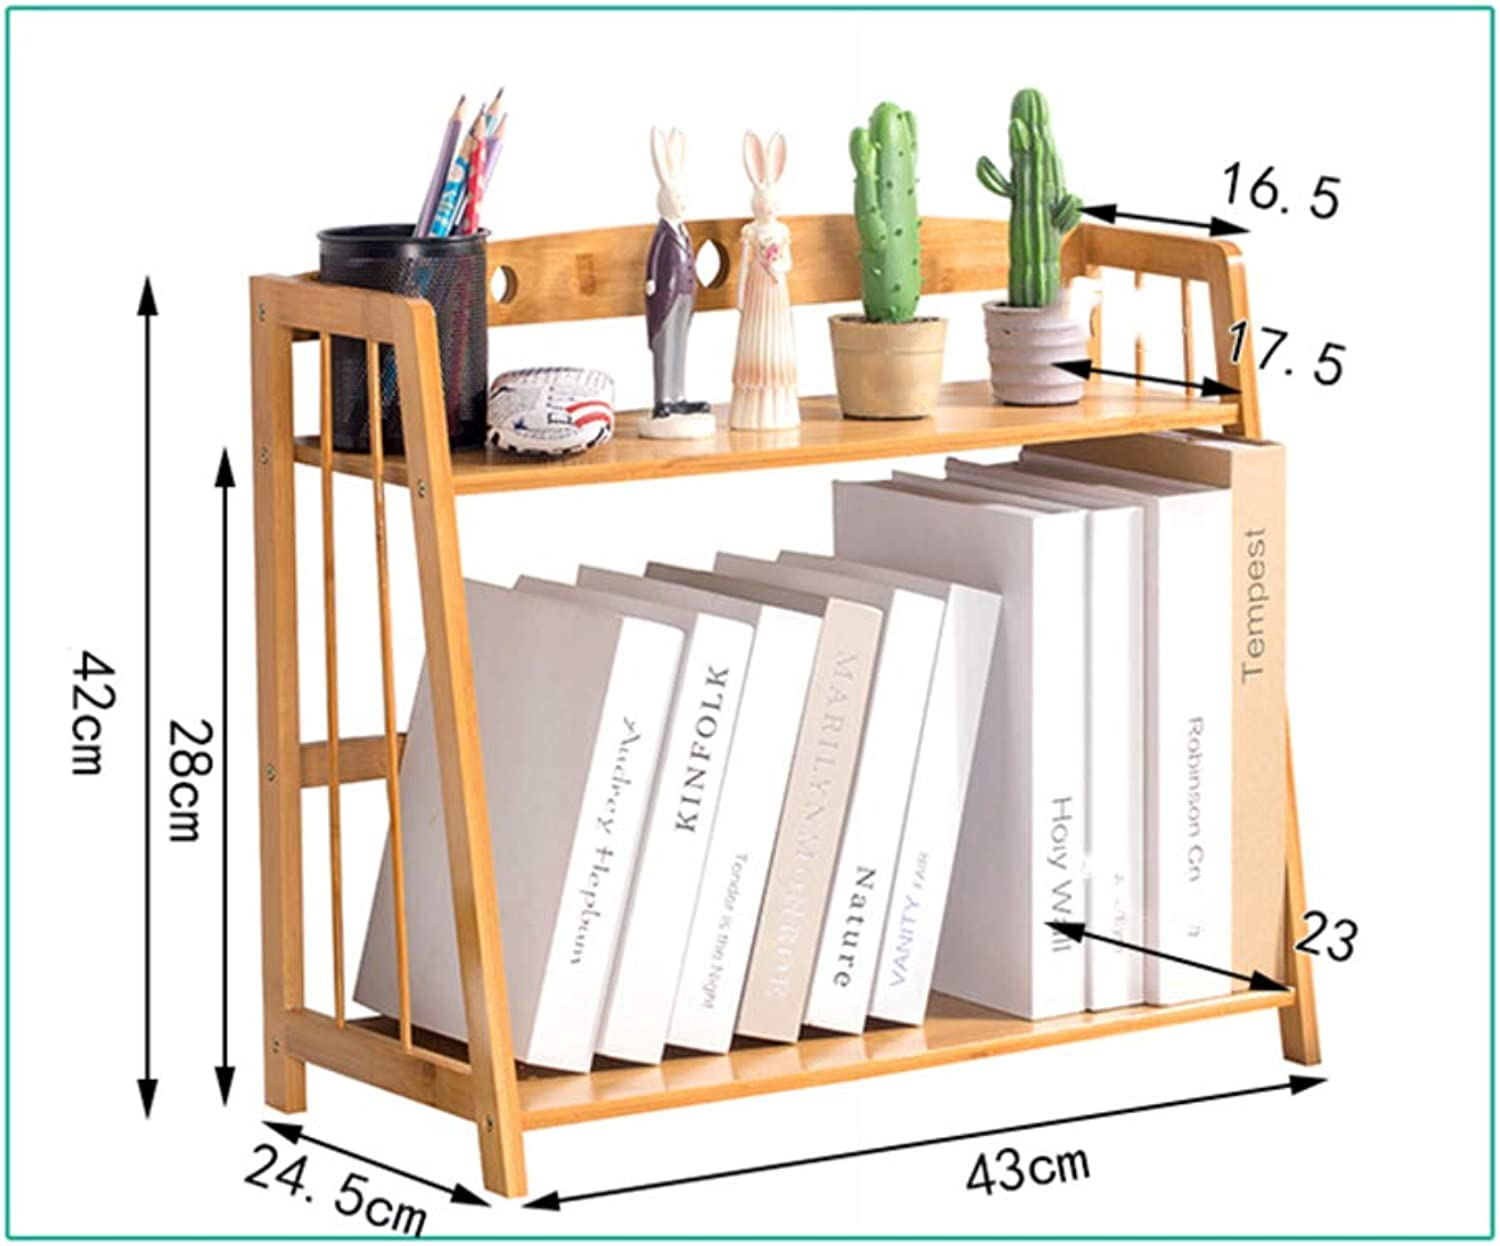 Desk Organiser Bookshelf, Simple Bookshelf, Multipurpose Storage Rack Shelf Desktop Shelves Easy Assembly for Office Bamboo Wood-k 43x24x42cm(17x9x17inch)